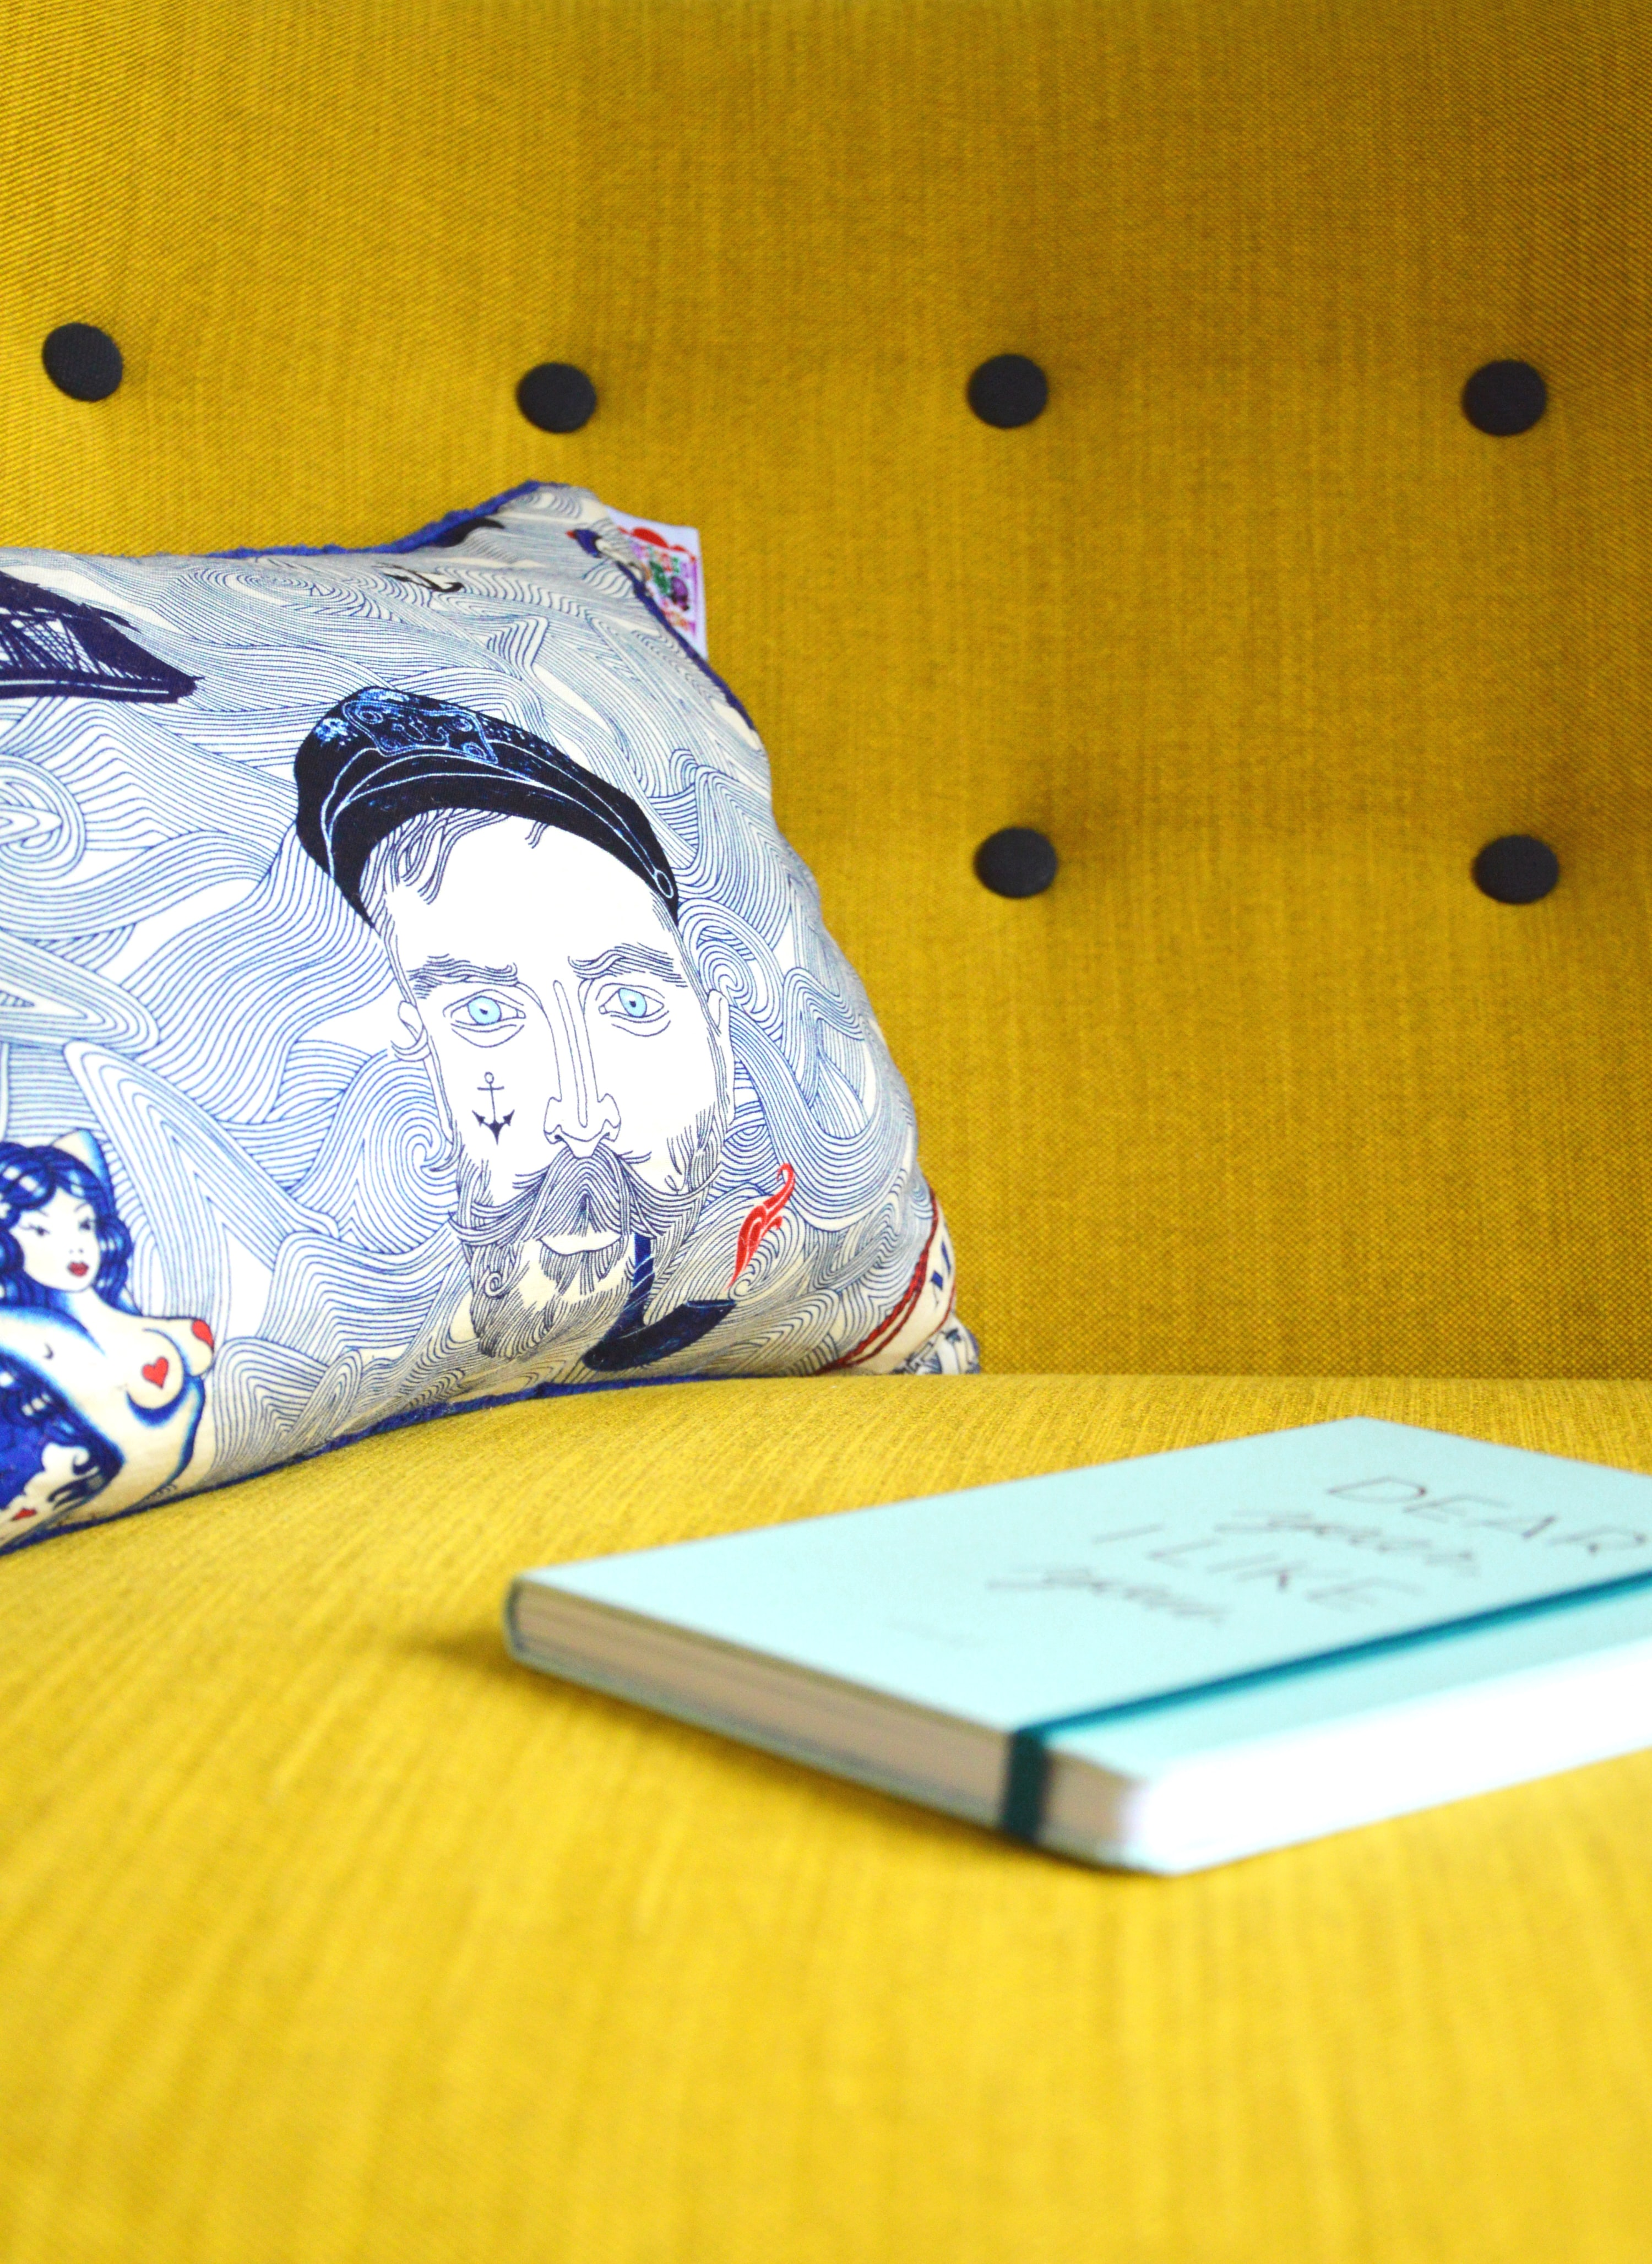 Book, cushion and a seat